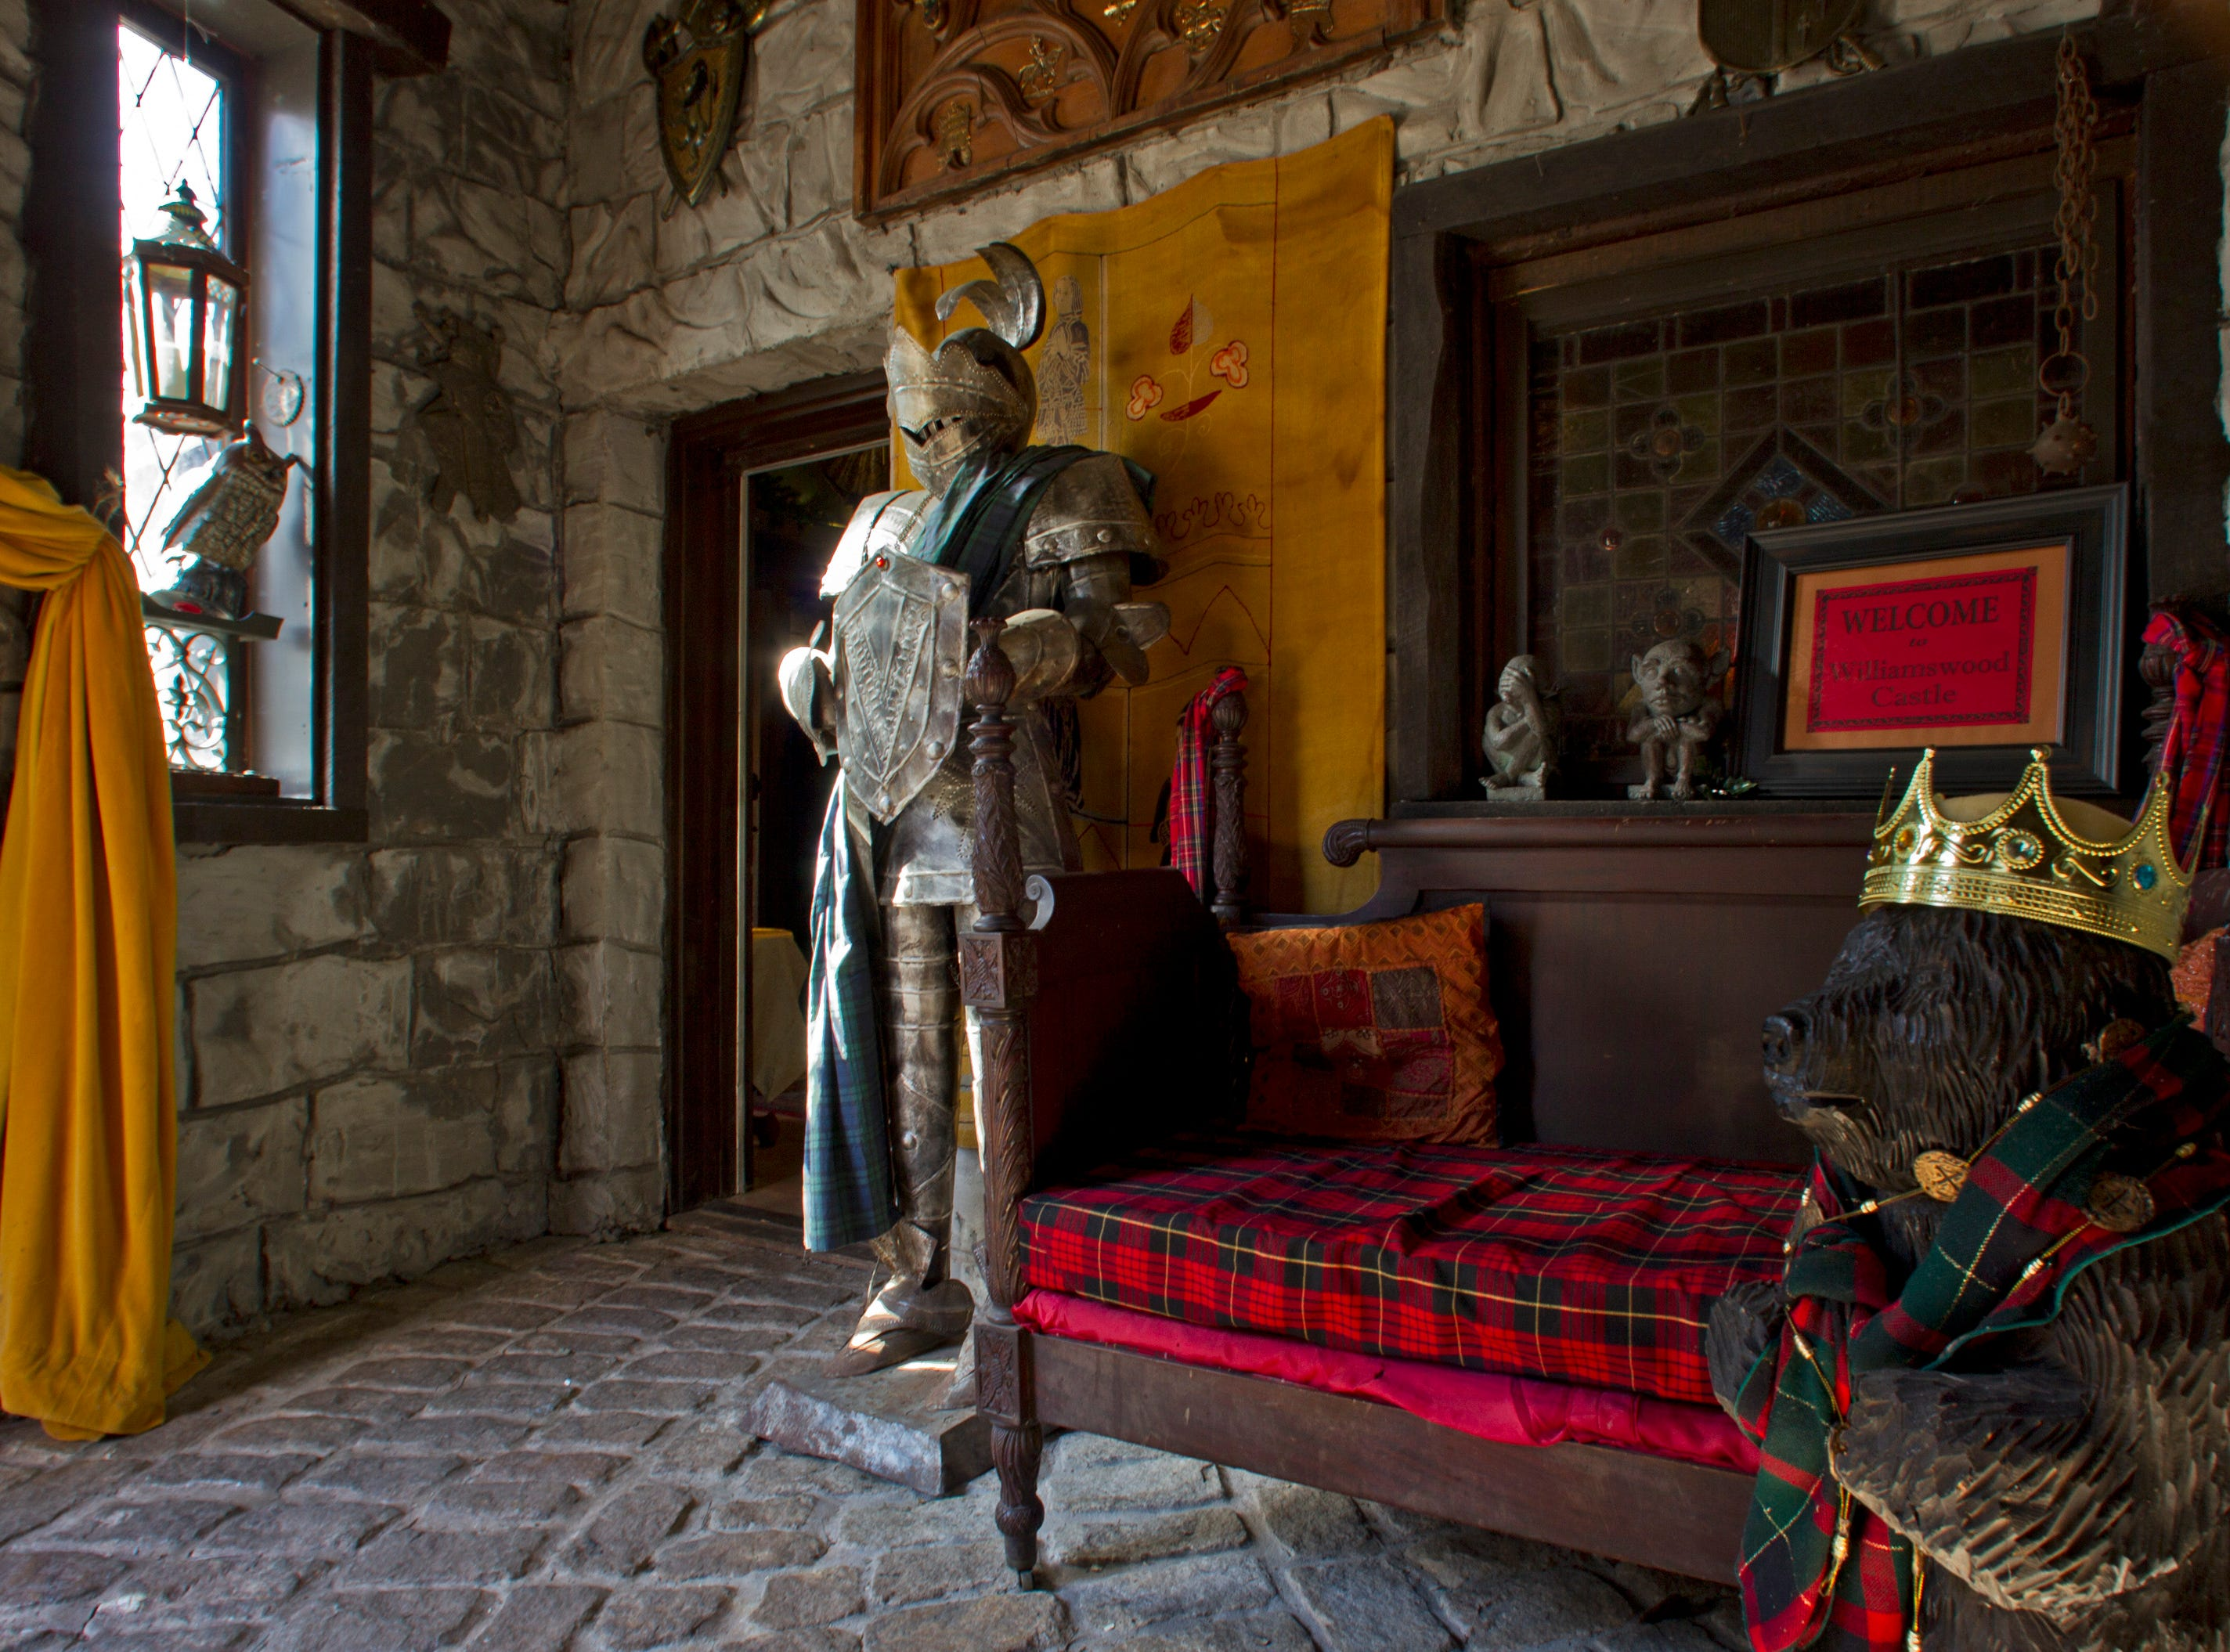 The entrance hall at Williamswood Castle which boasts battlements and turrets, a secret passageway, and an impressive looking dungeon. Located near Ijams Nature Center in South Knoxville, it is now available for rental.